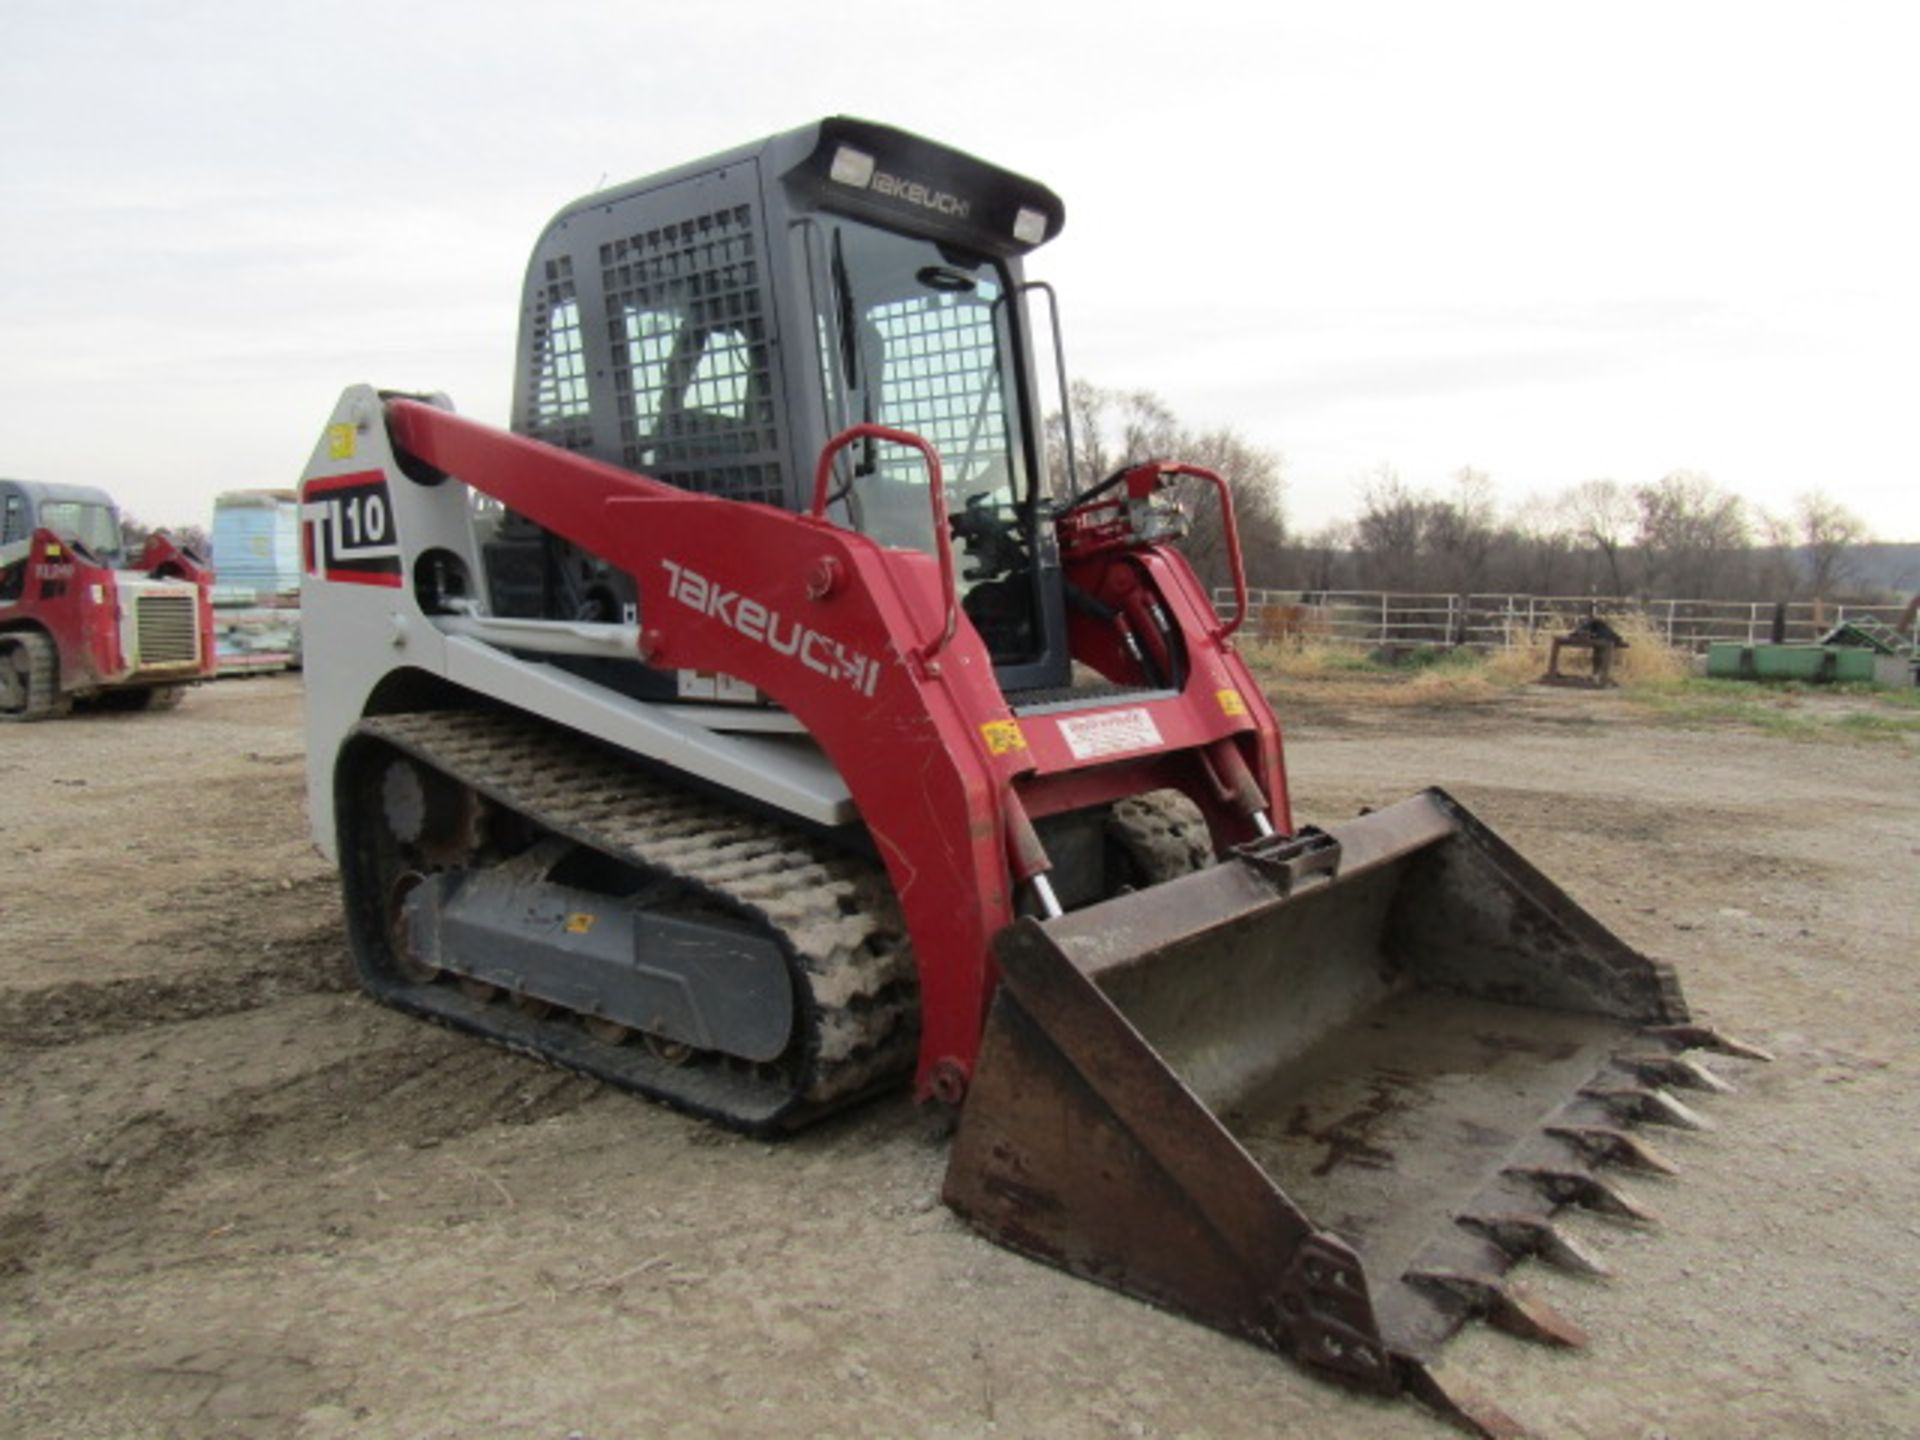 """Lot 219 - 2016 Takeuchi TL10 Uniloader, Serial # 201003309, 448 Hours, with 6'4"""" Bucket, Bradco Model 10702"""